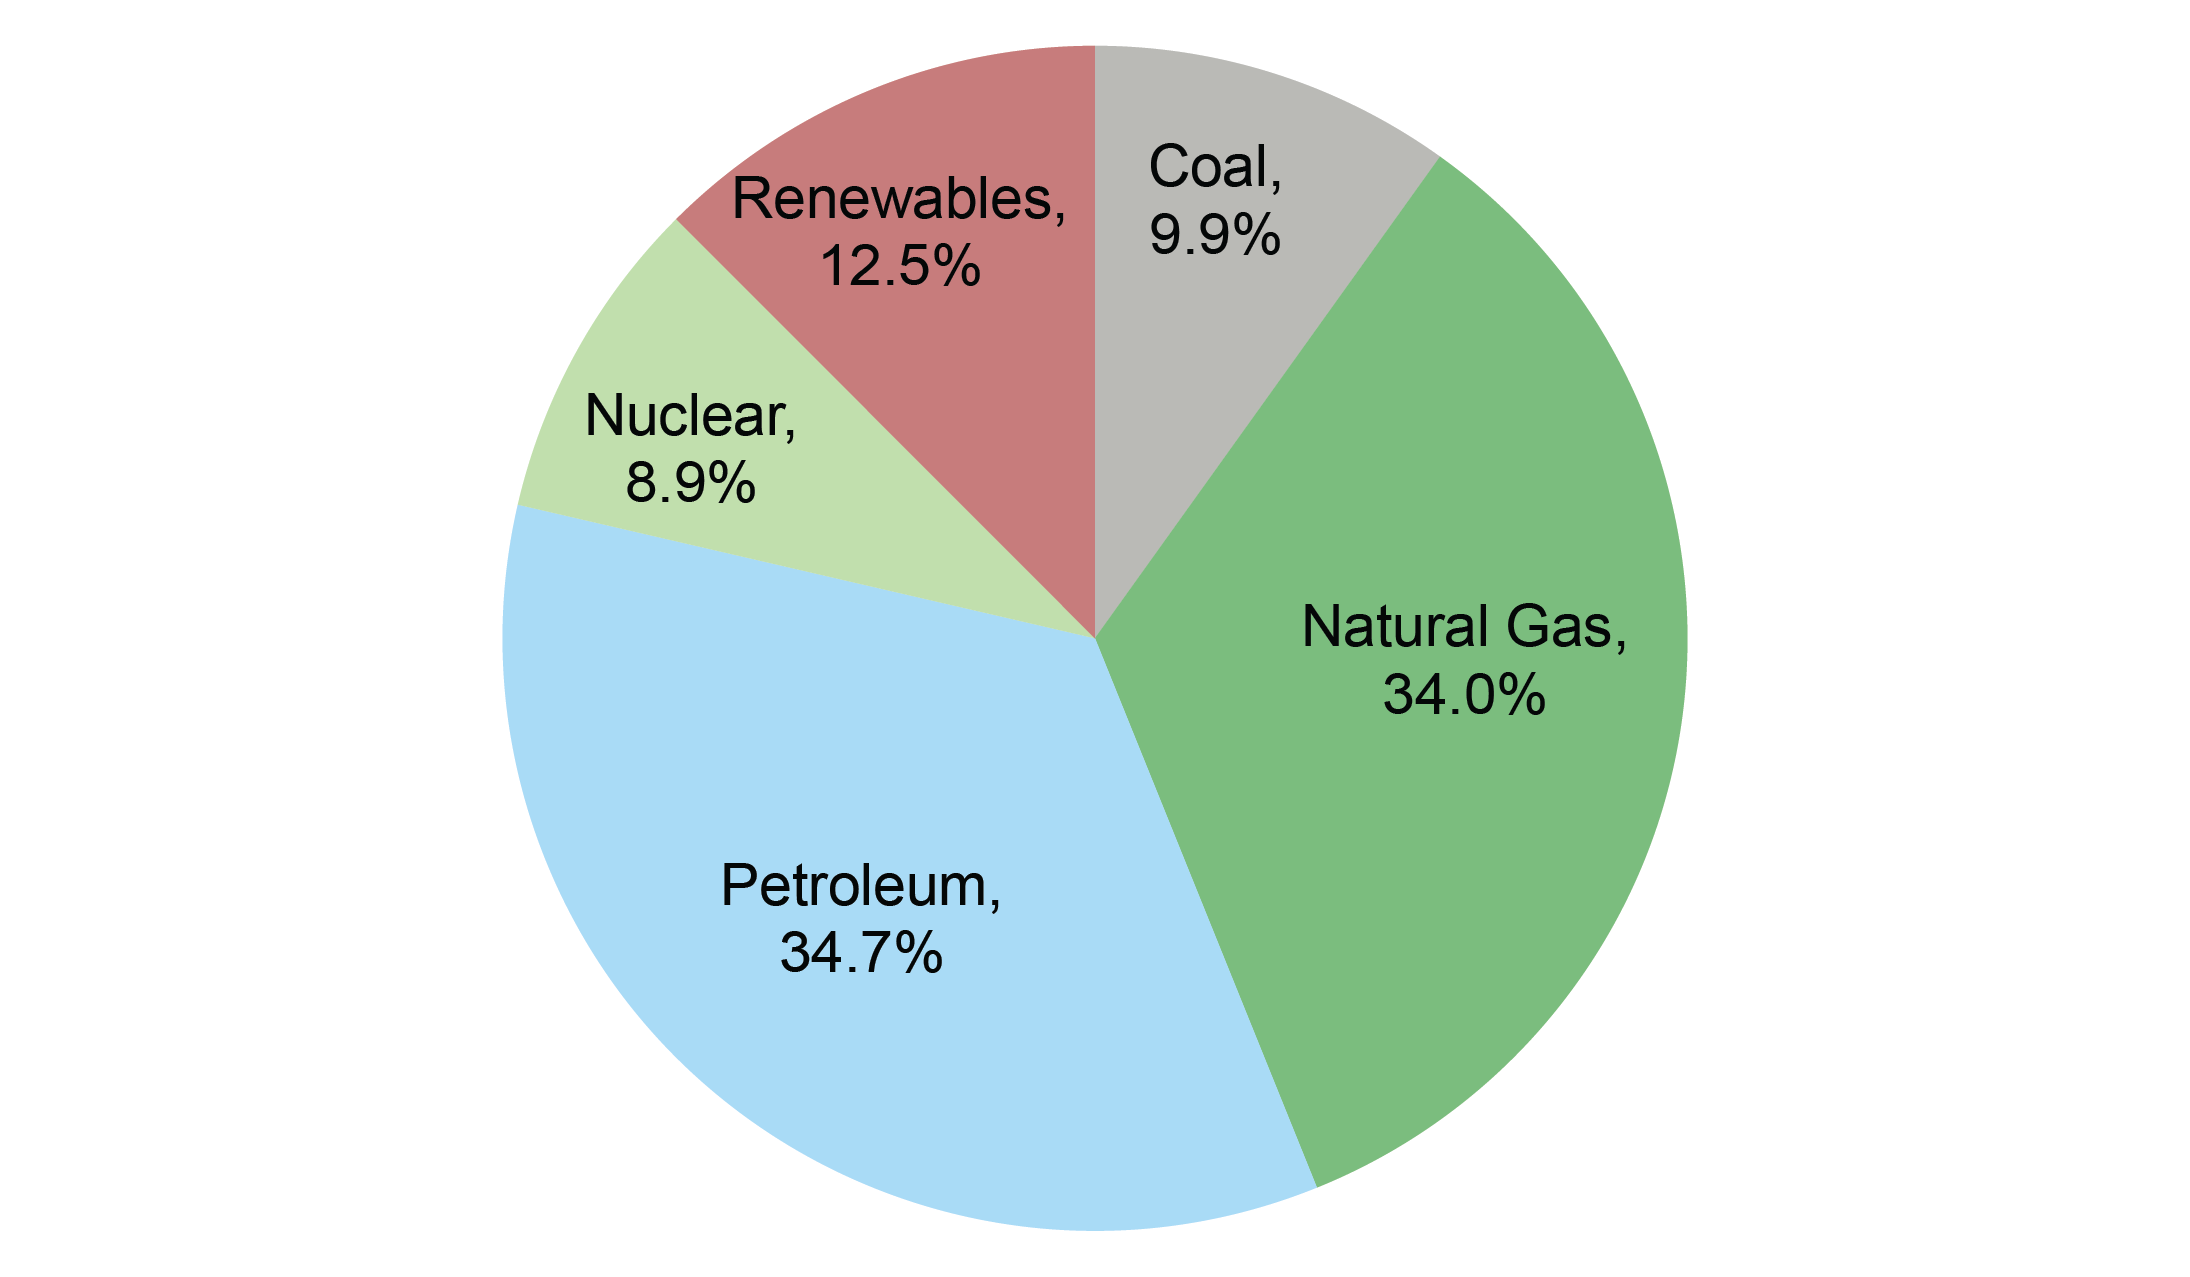 U.S. Energy Consumption by Source, 2020